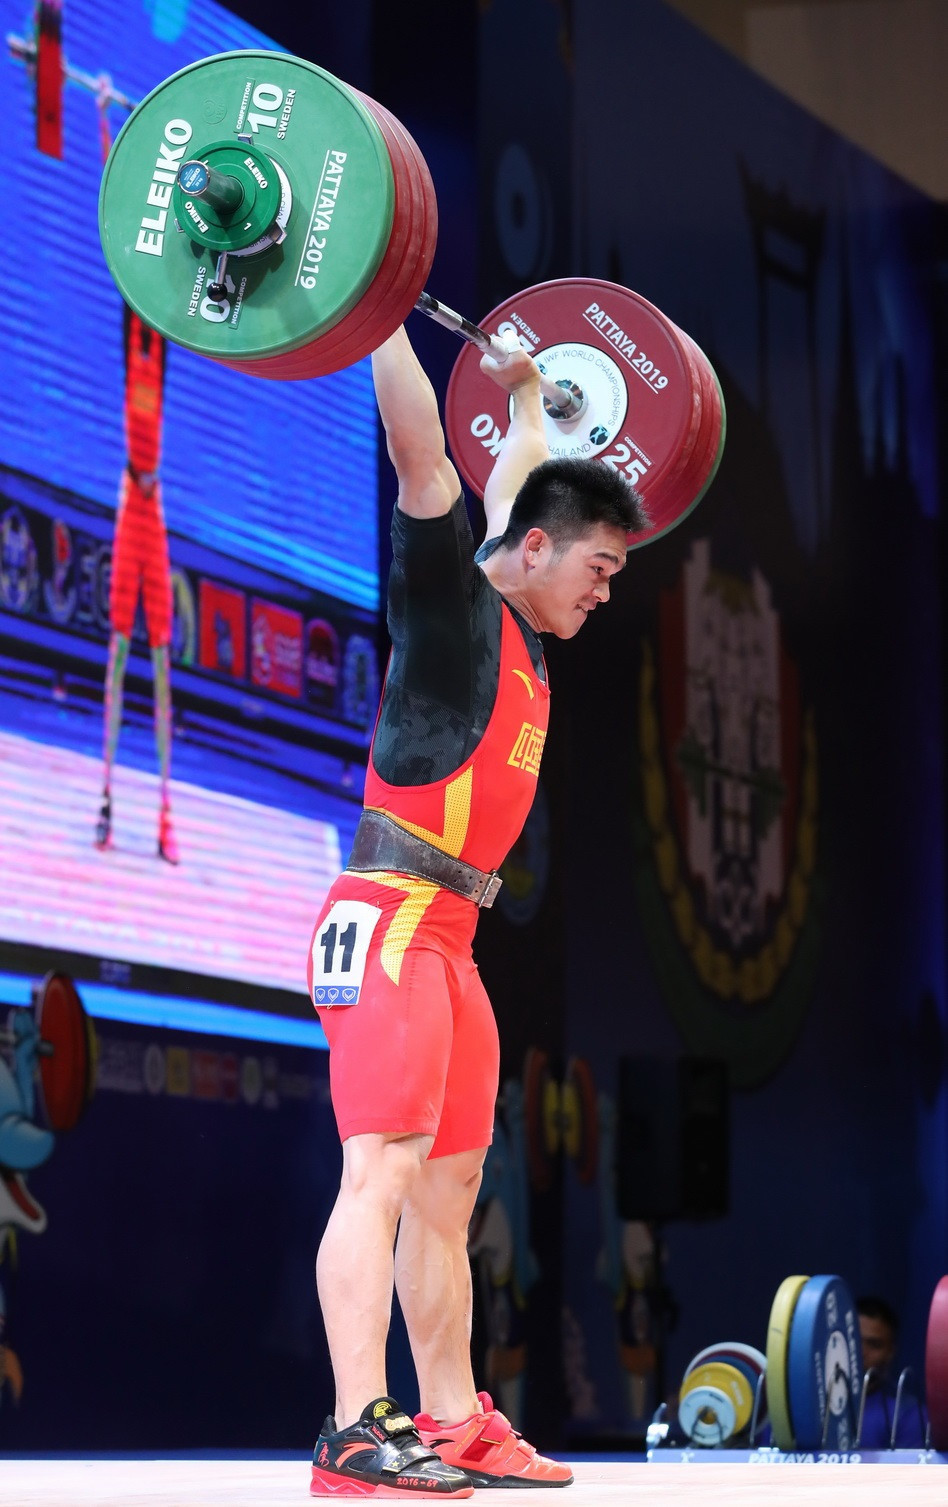 China's Shi Zhiyong was in a different league to his fellow competitors in the men's 73kg event ©IWF